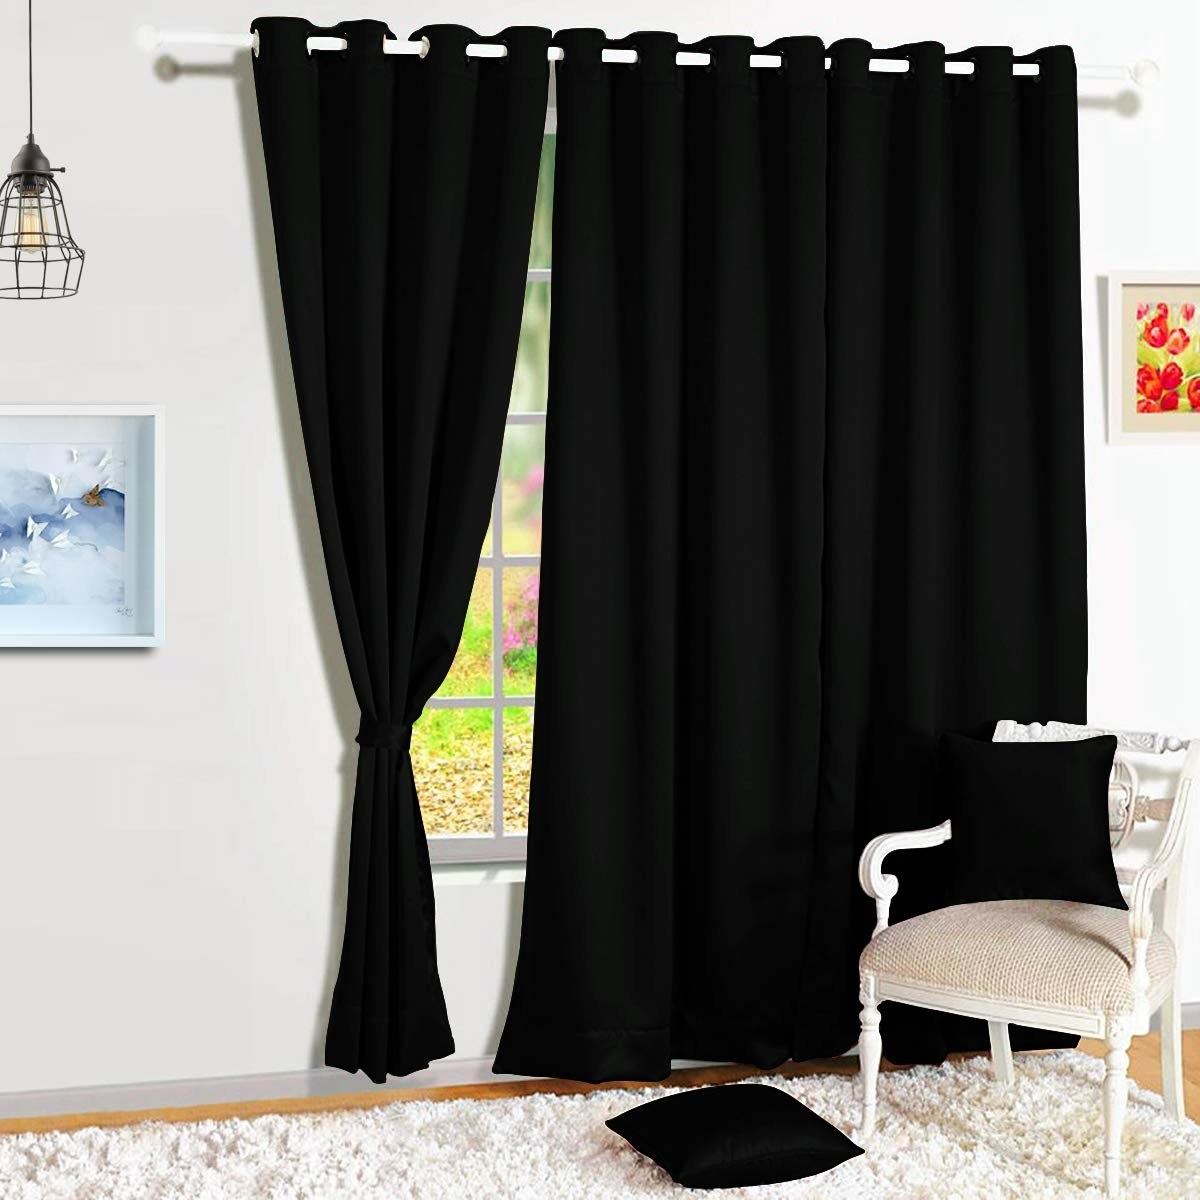 A blackout curtain over a window